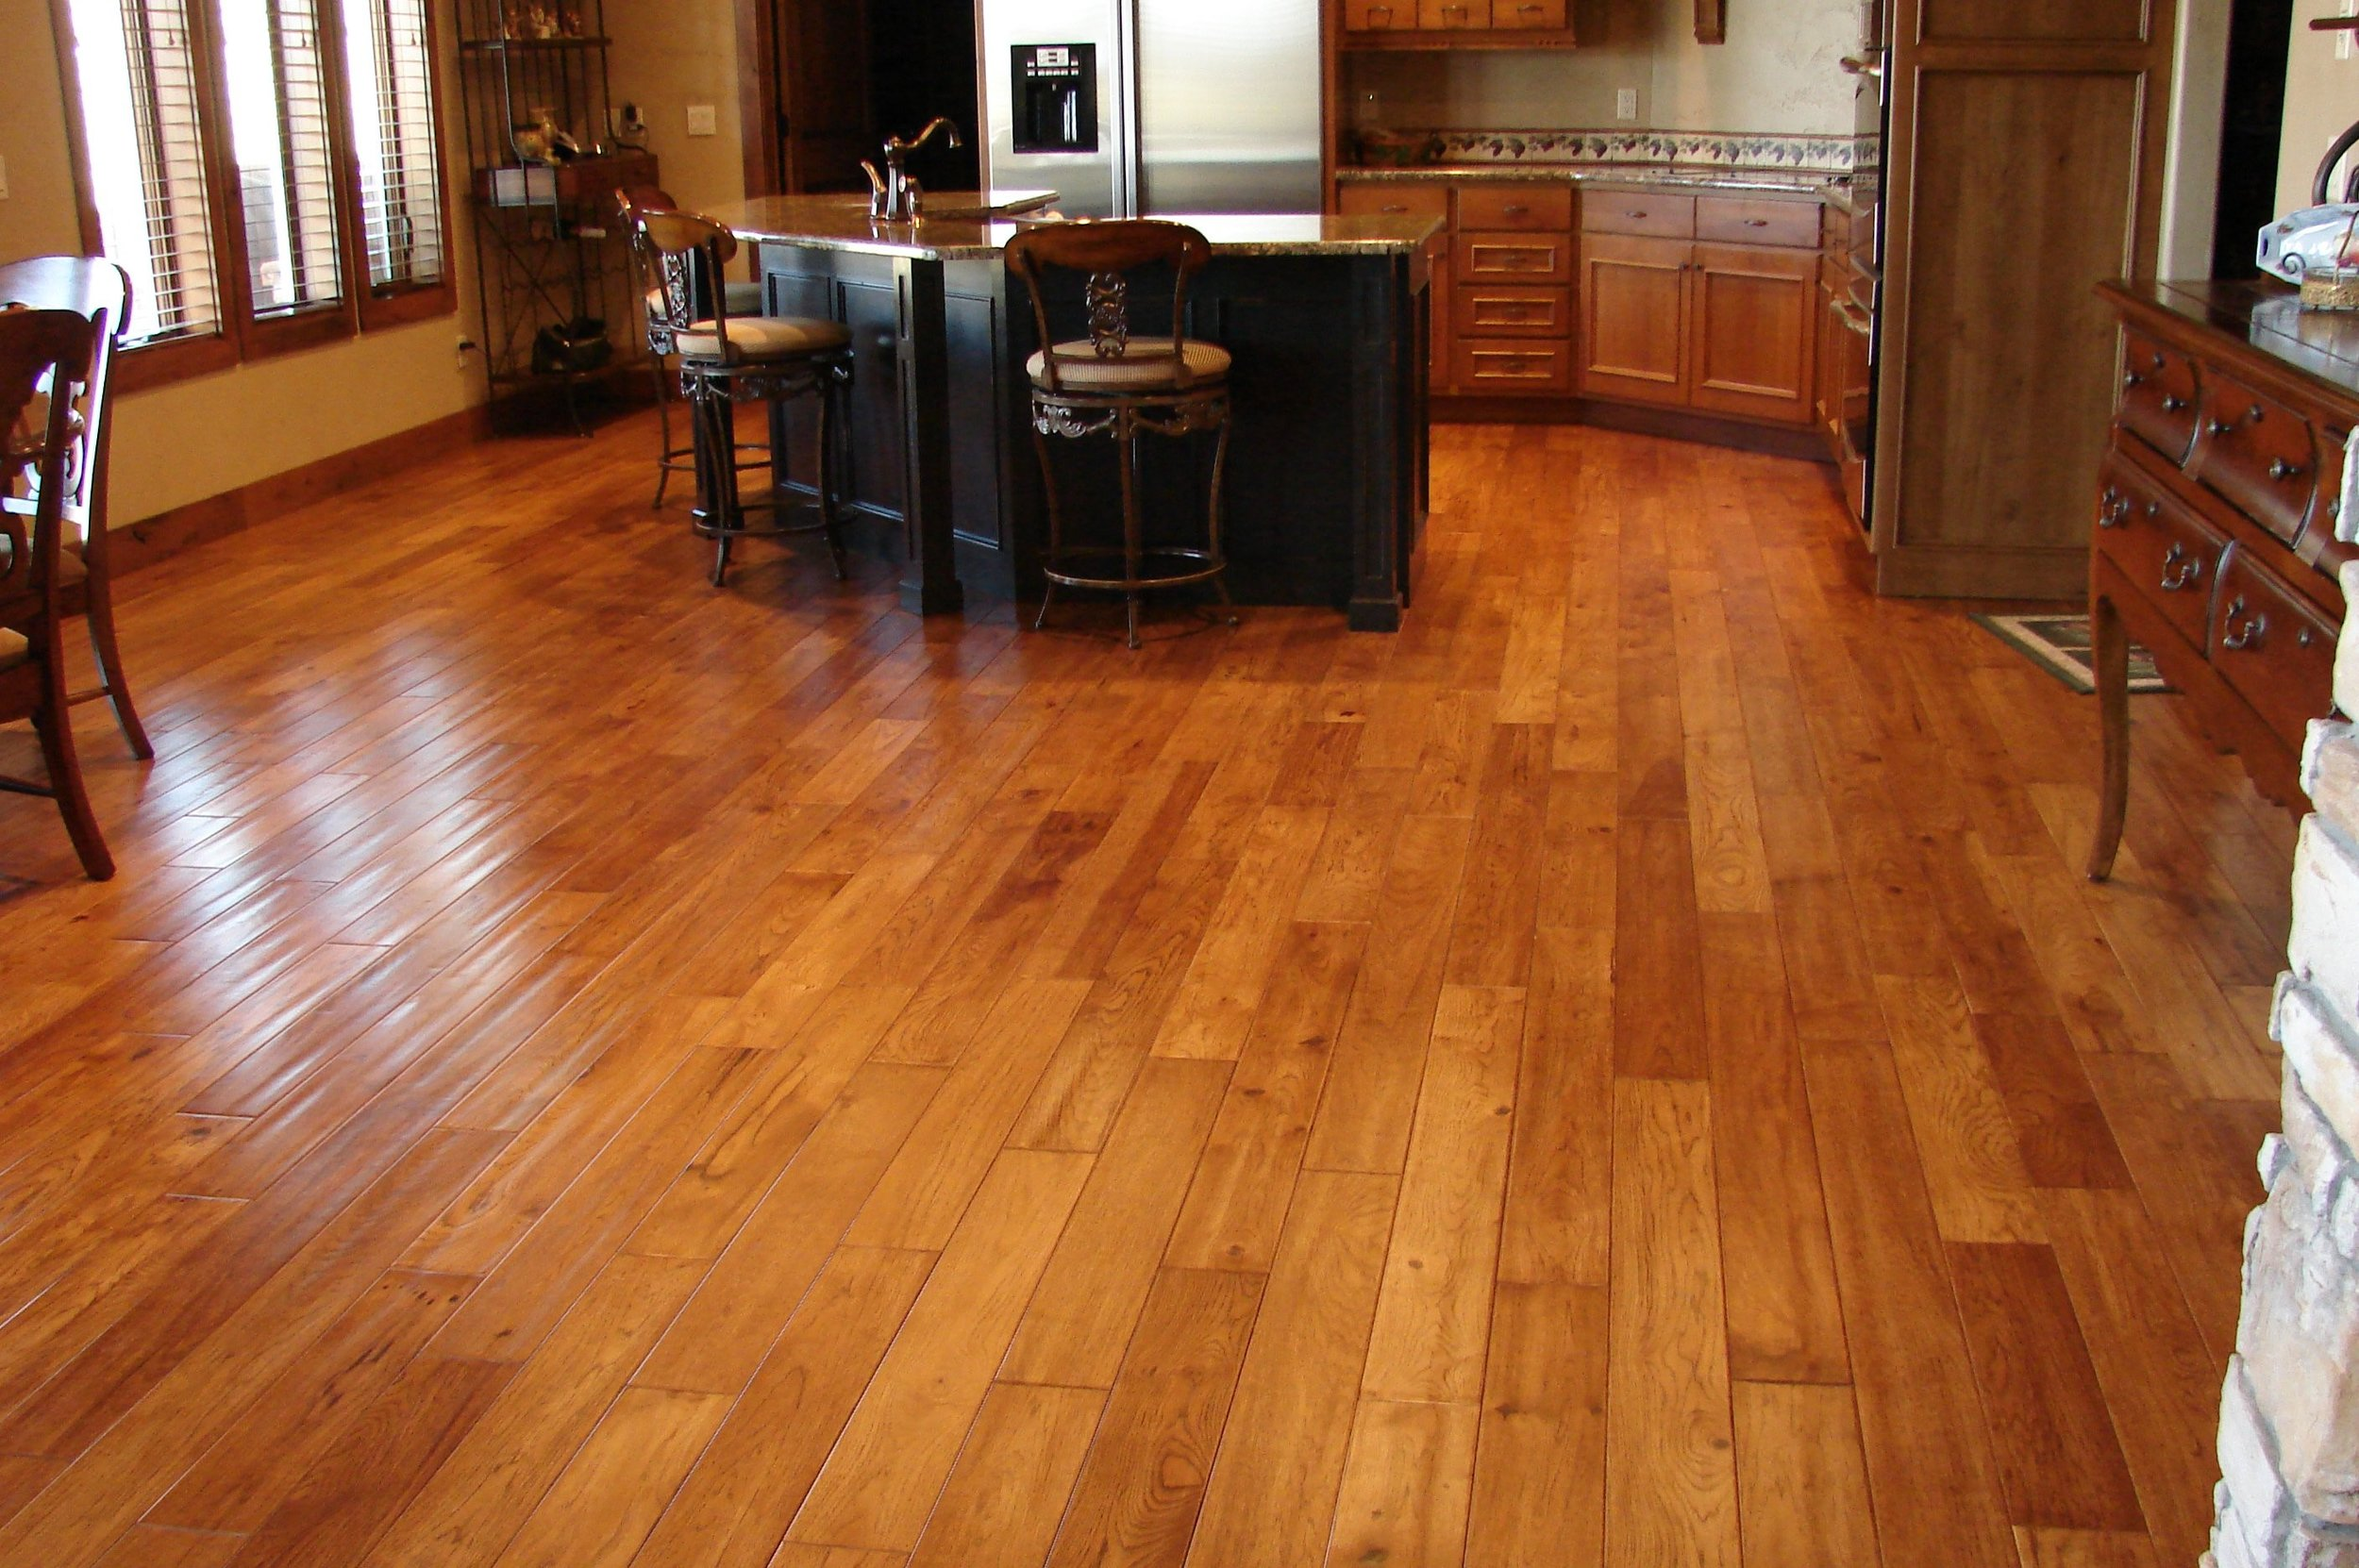 Questions? Interested? - For questions or to schedule a free estimate